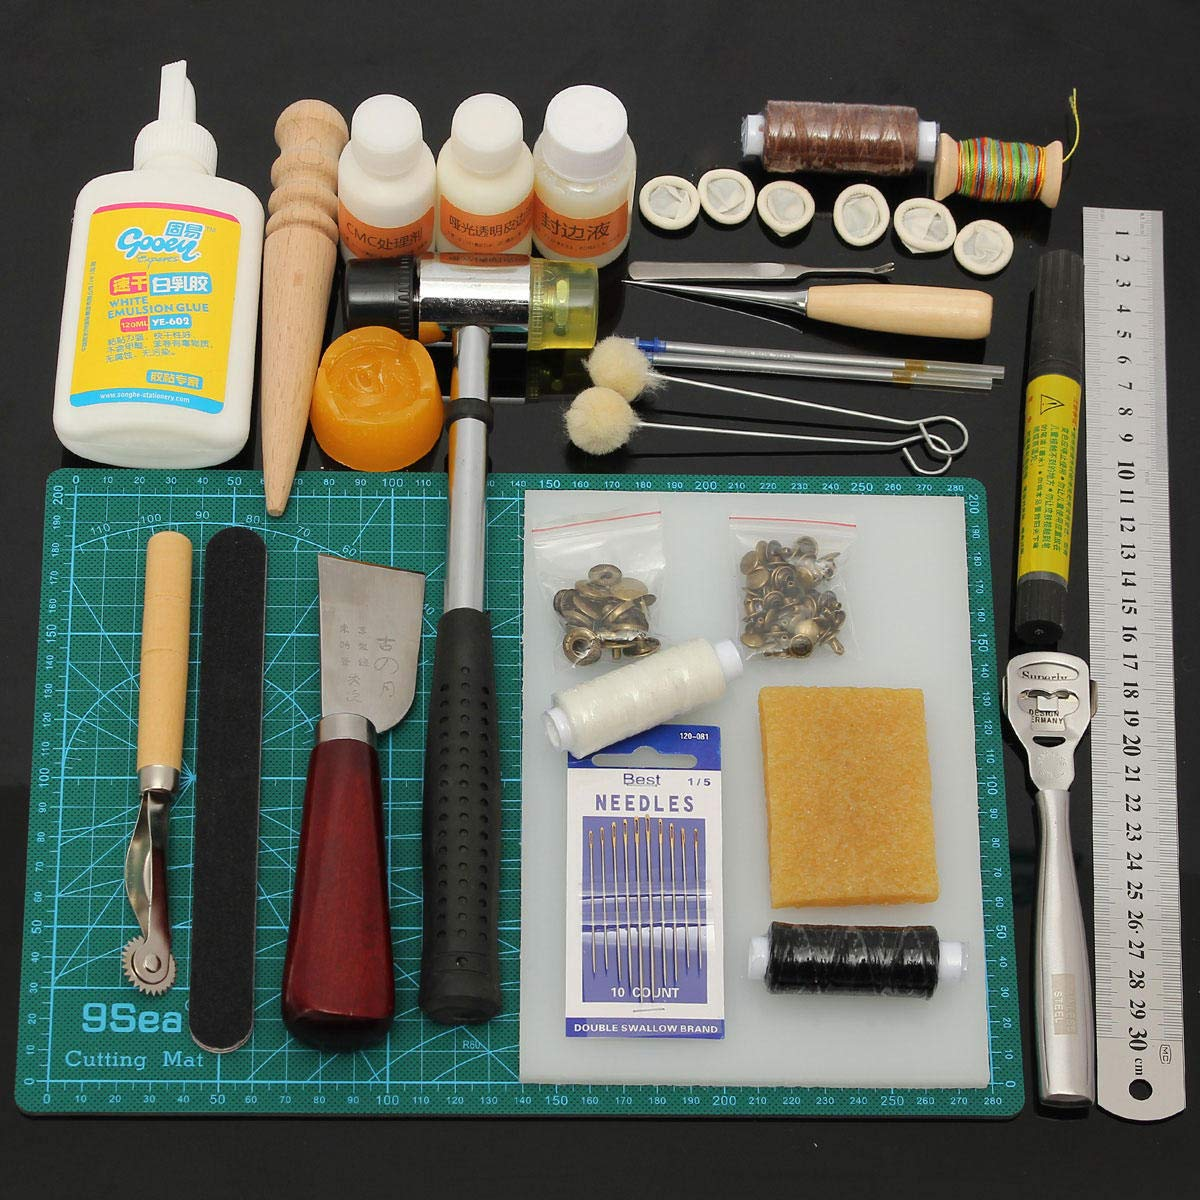 Leather Craft Tool Kit Leather Hand Sewing Tool Punch Cutter DIY Set by Anddoa (Image #2)